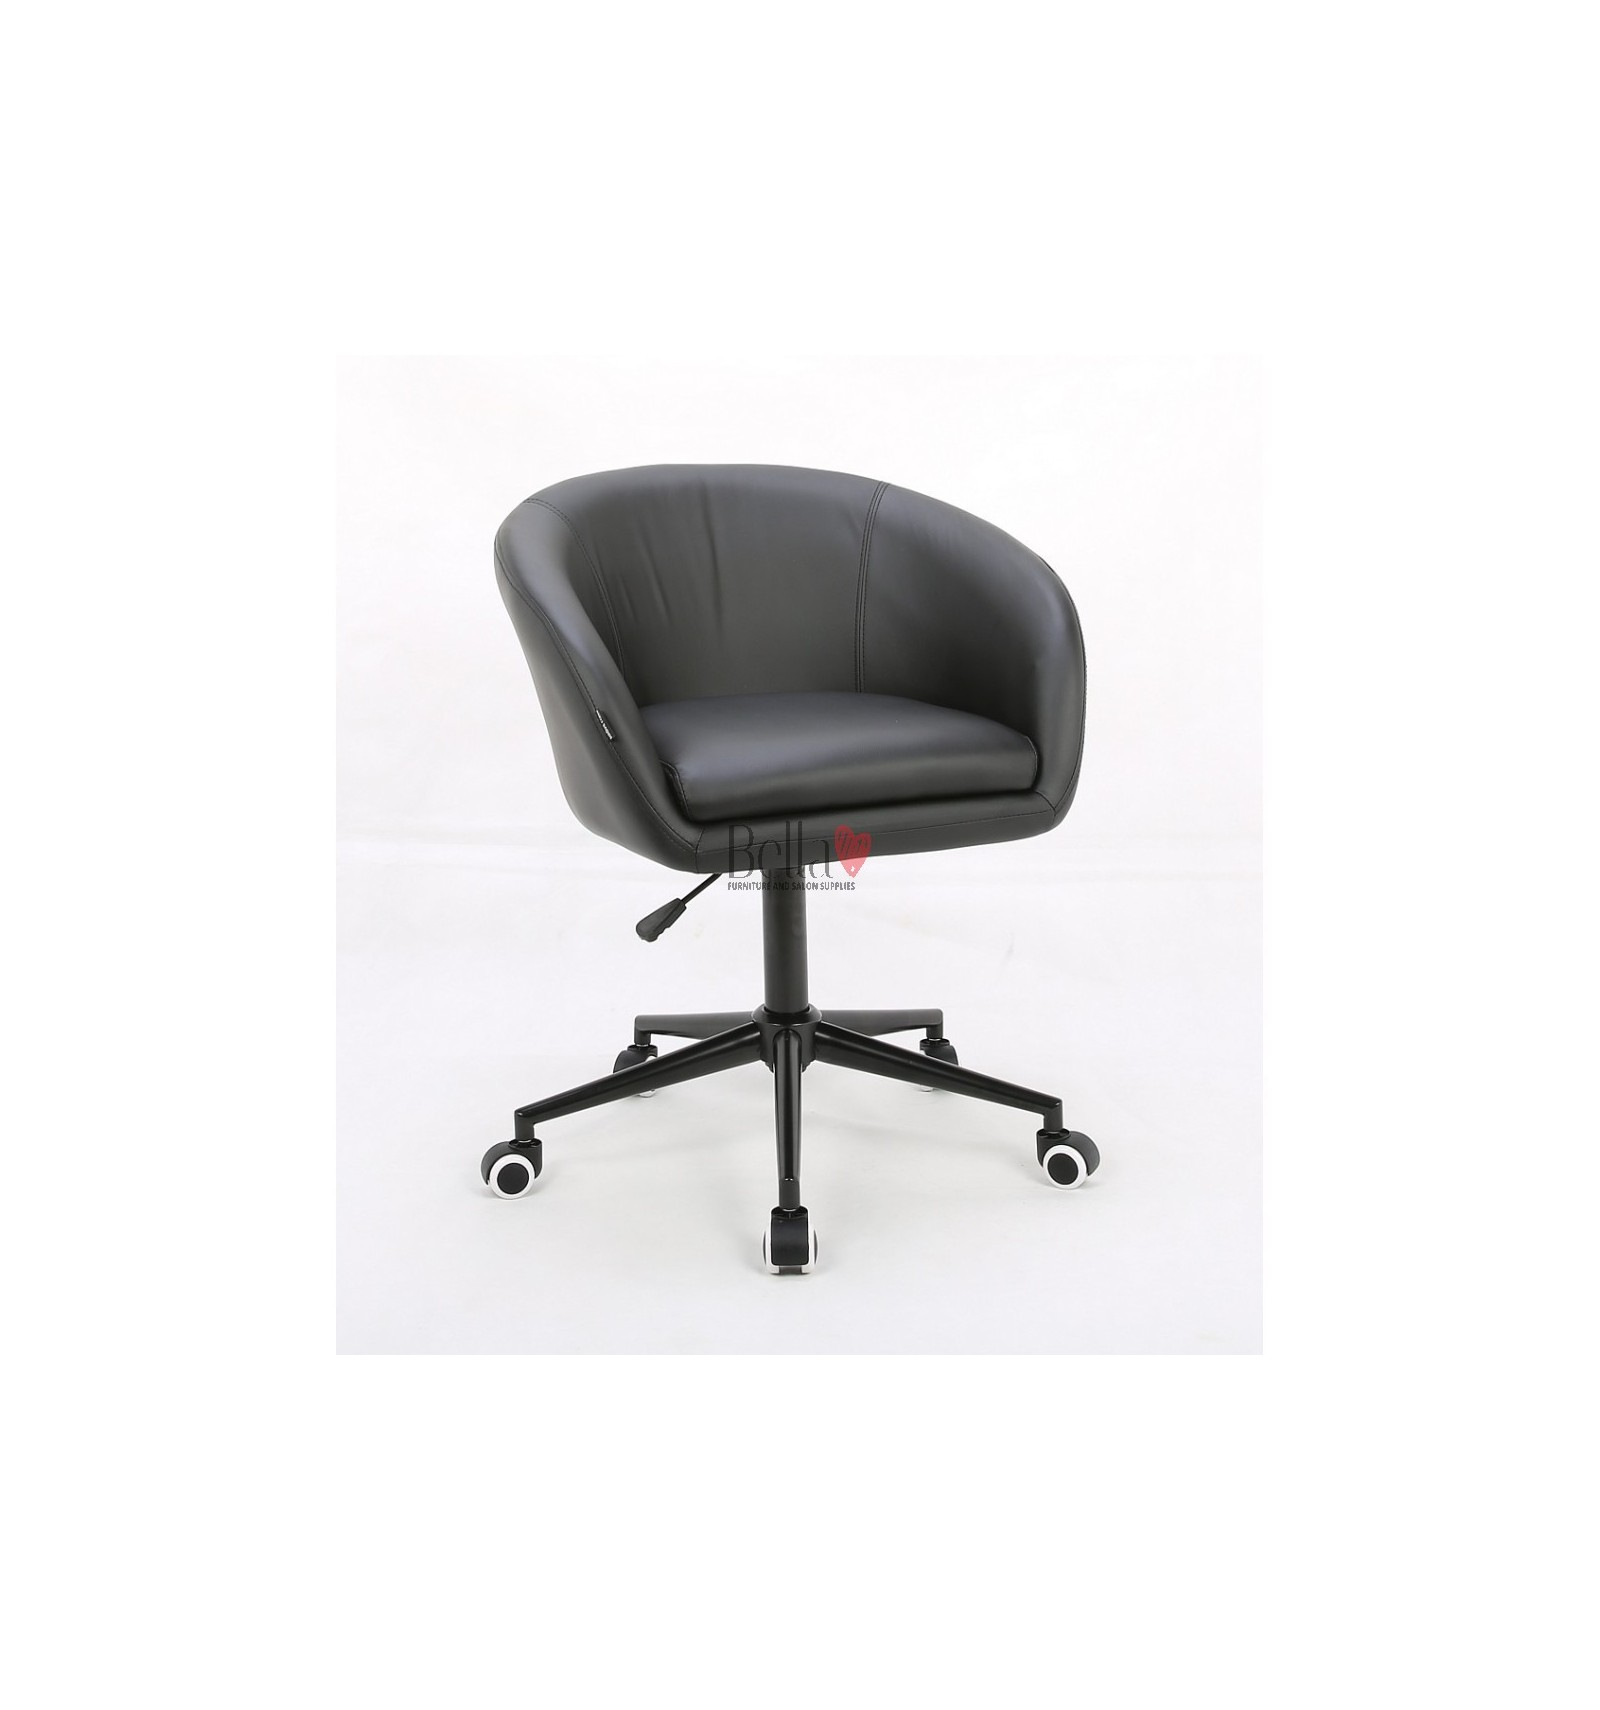 Black salon chairs on wheels for sale Salon chairs for